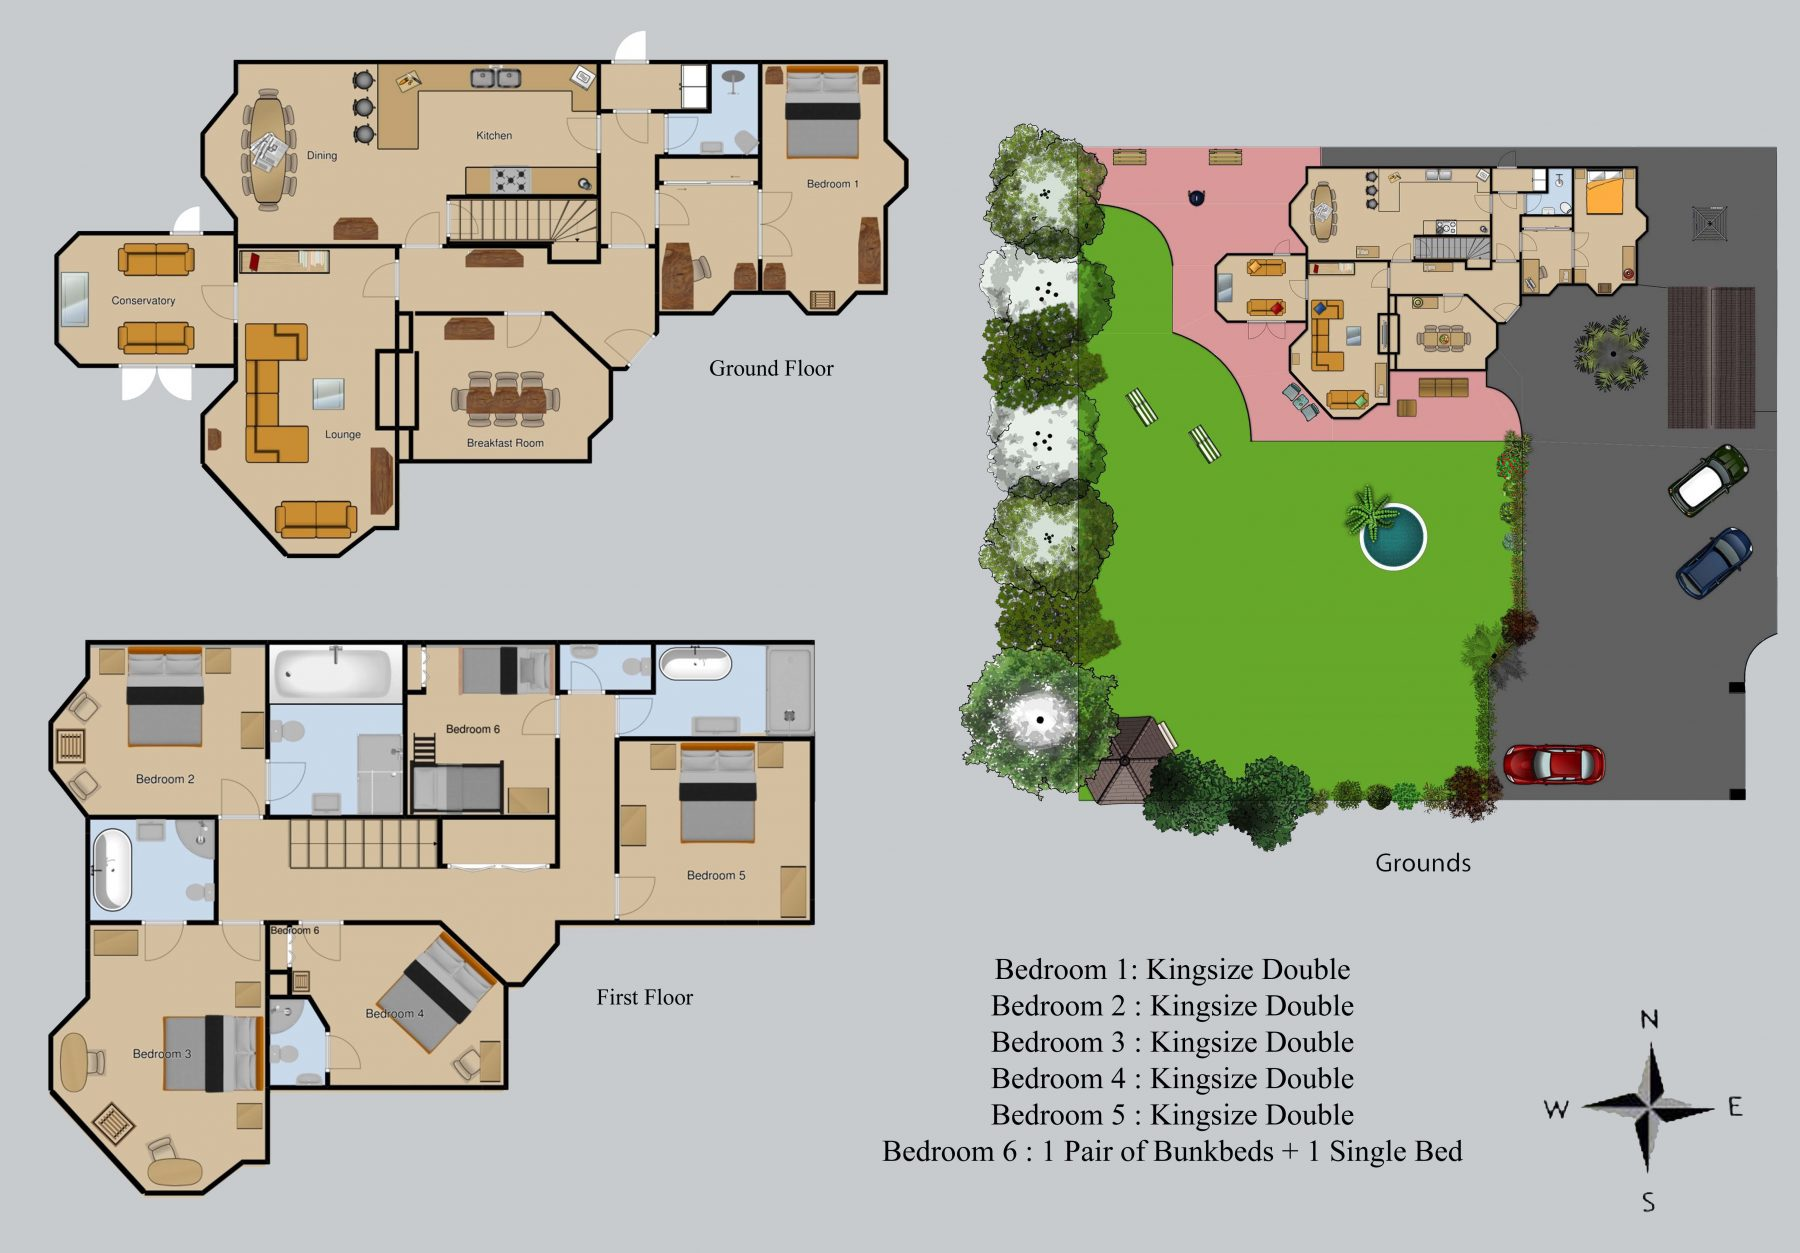 Floor plan for Windbrake House